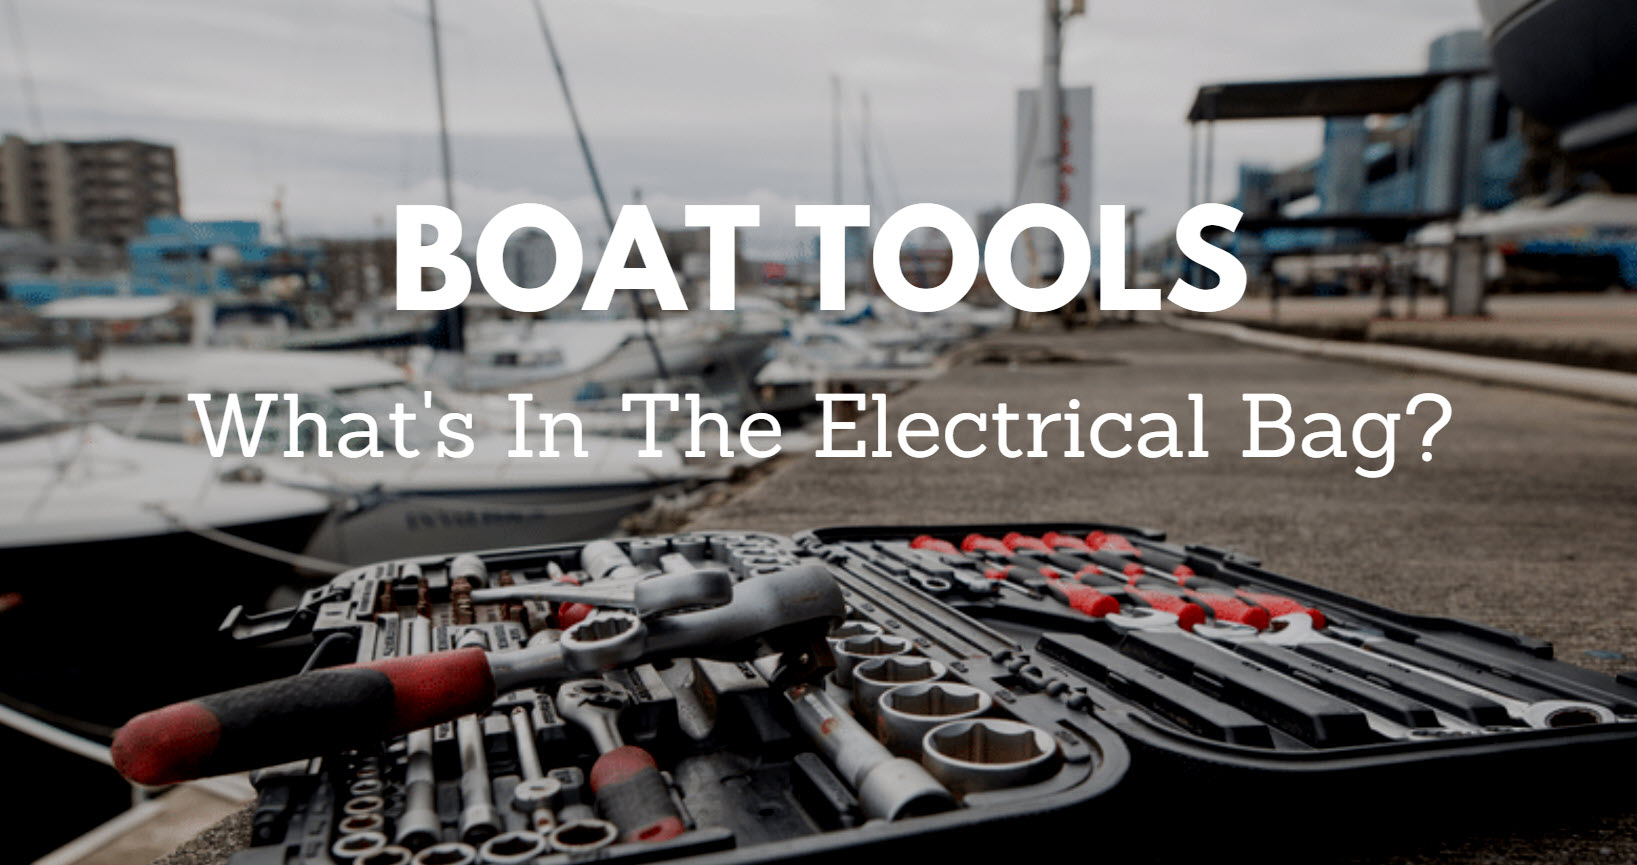 Boat Tools Electrical Bag